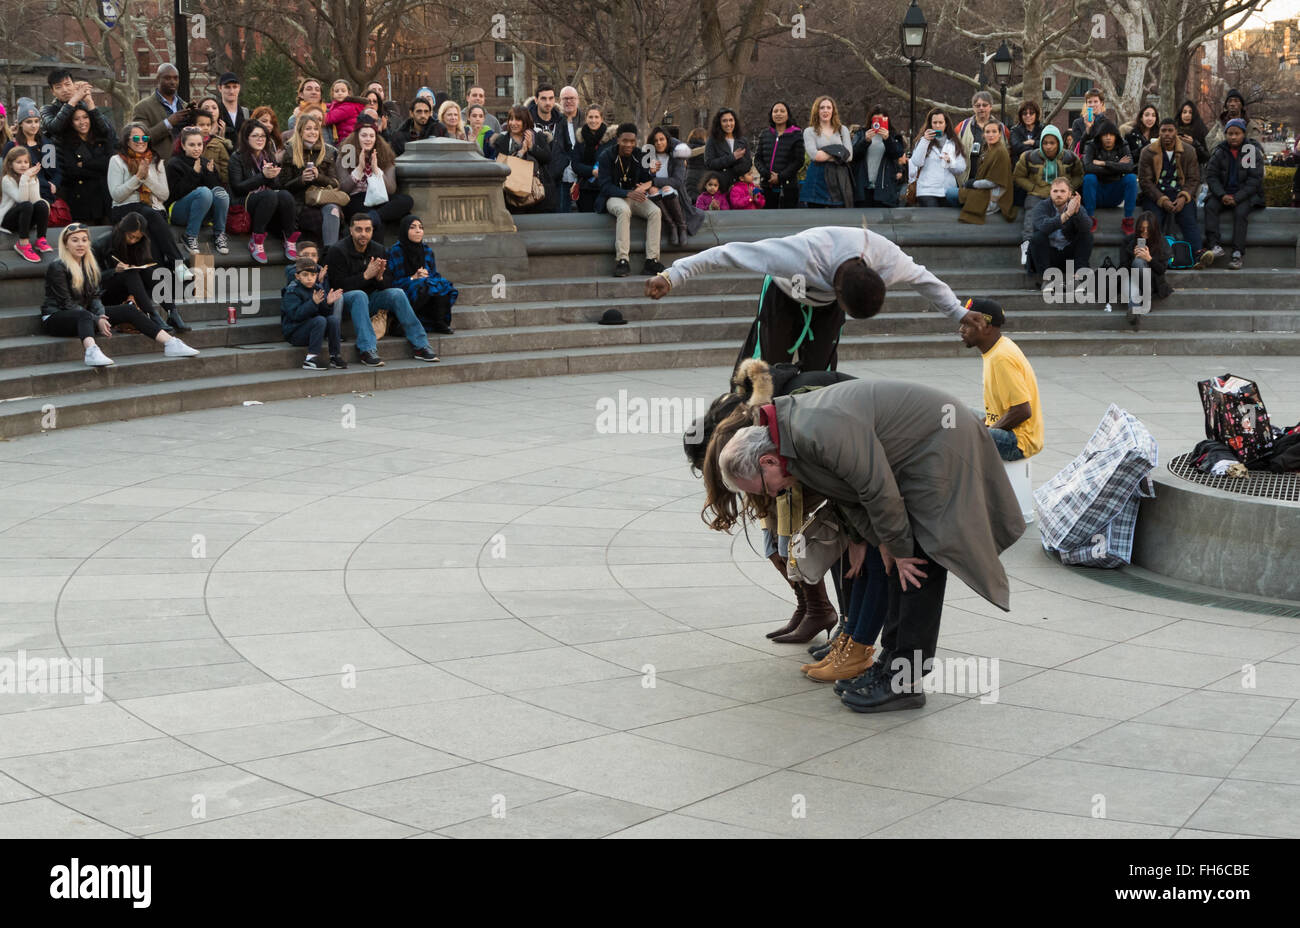 Street performance in Washington Square Park of acrobat somersaulting over volunteers with crowds of spectators - Stock Image